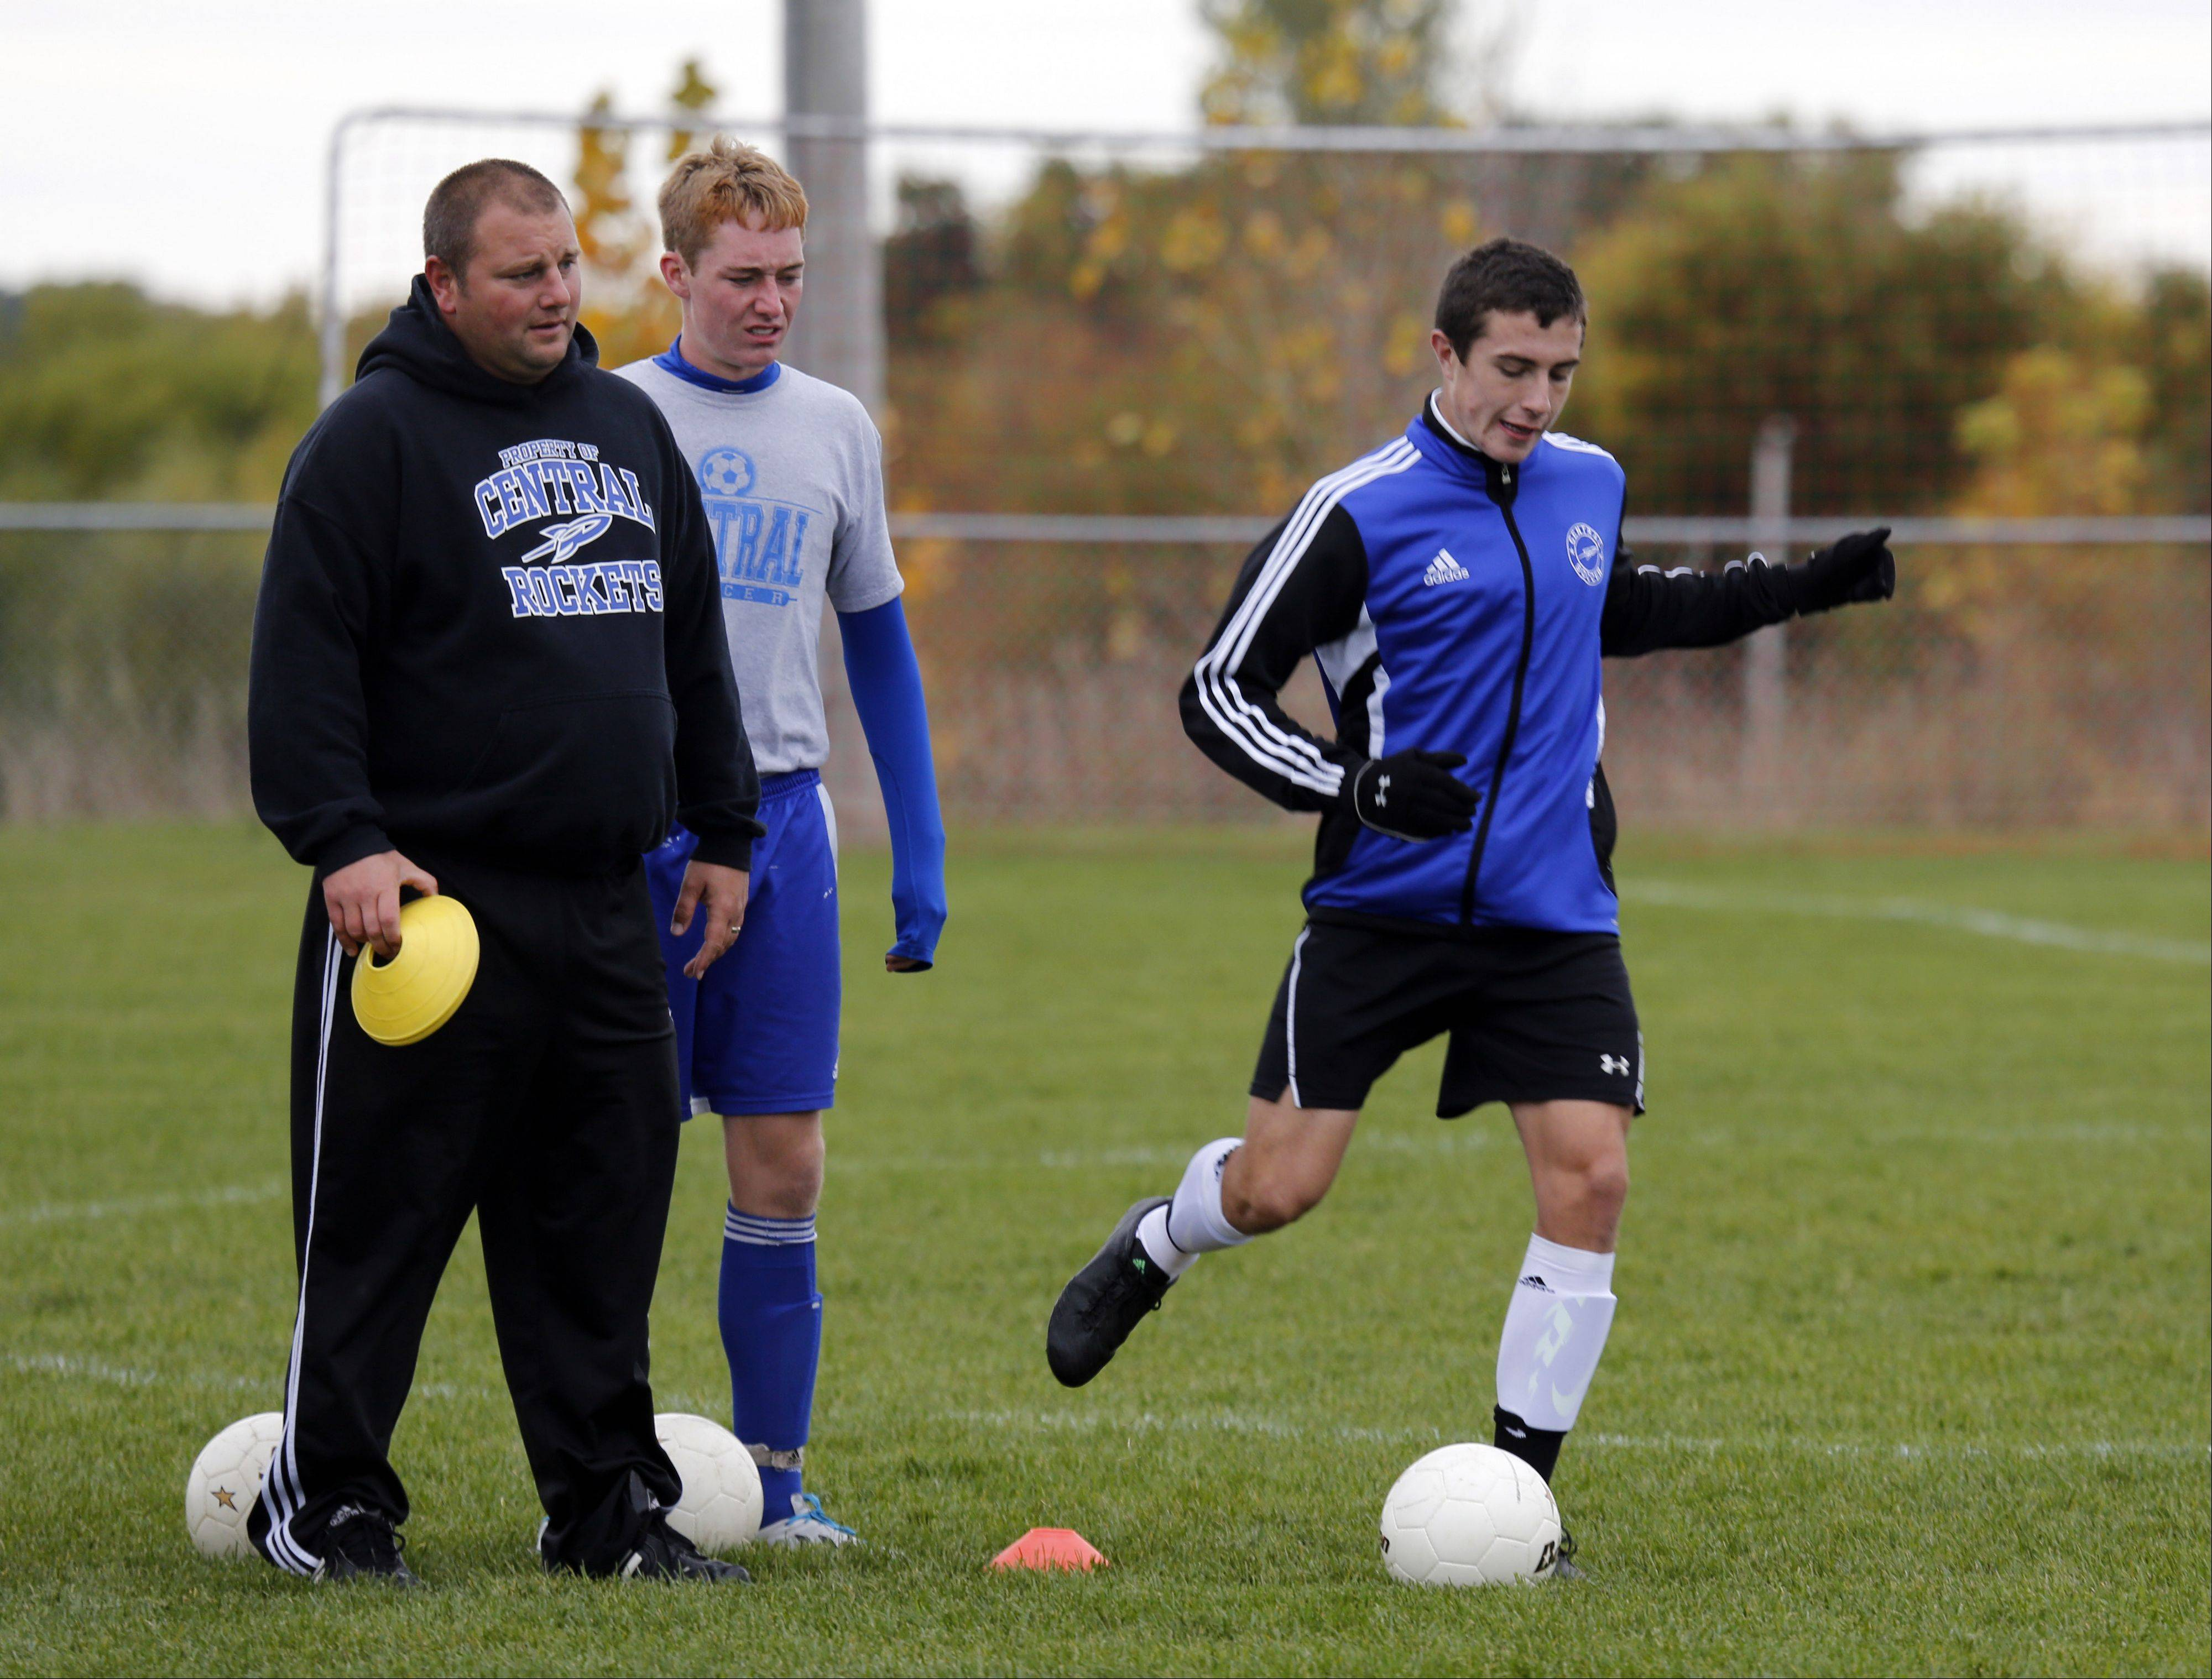 Burlington Central coach Mike Gecan, left, Sean Fitzgerald, and Matt O'Connor talk at a recent practice.